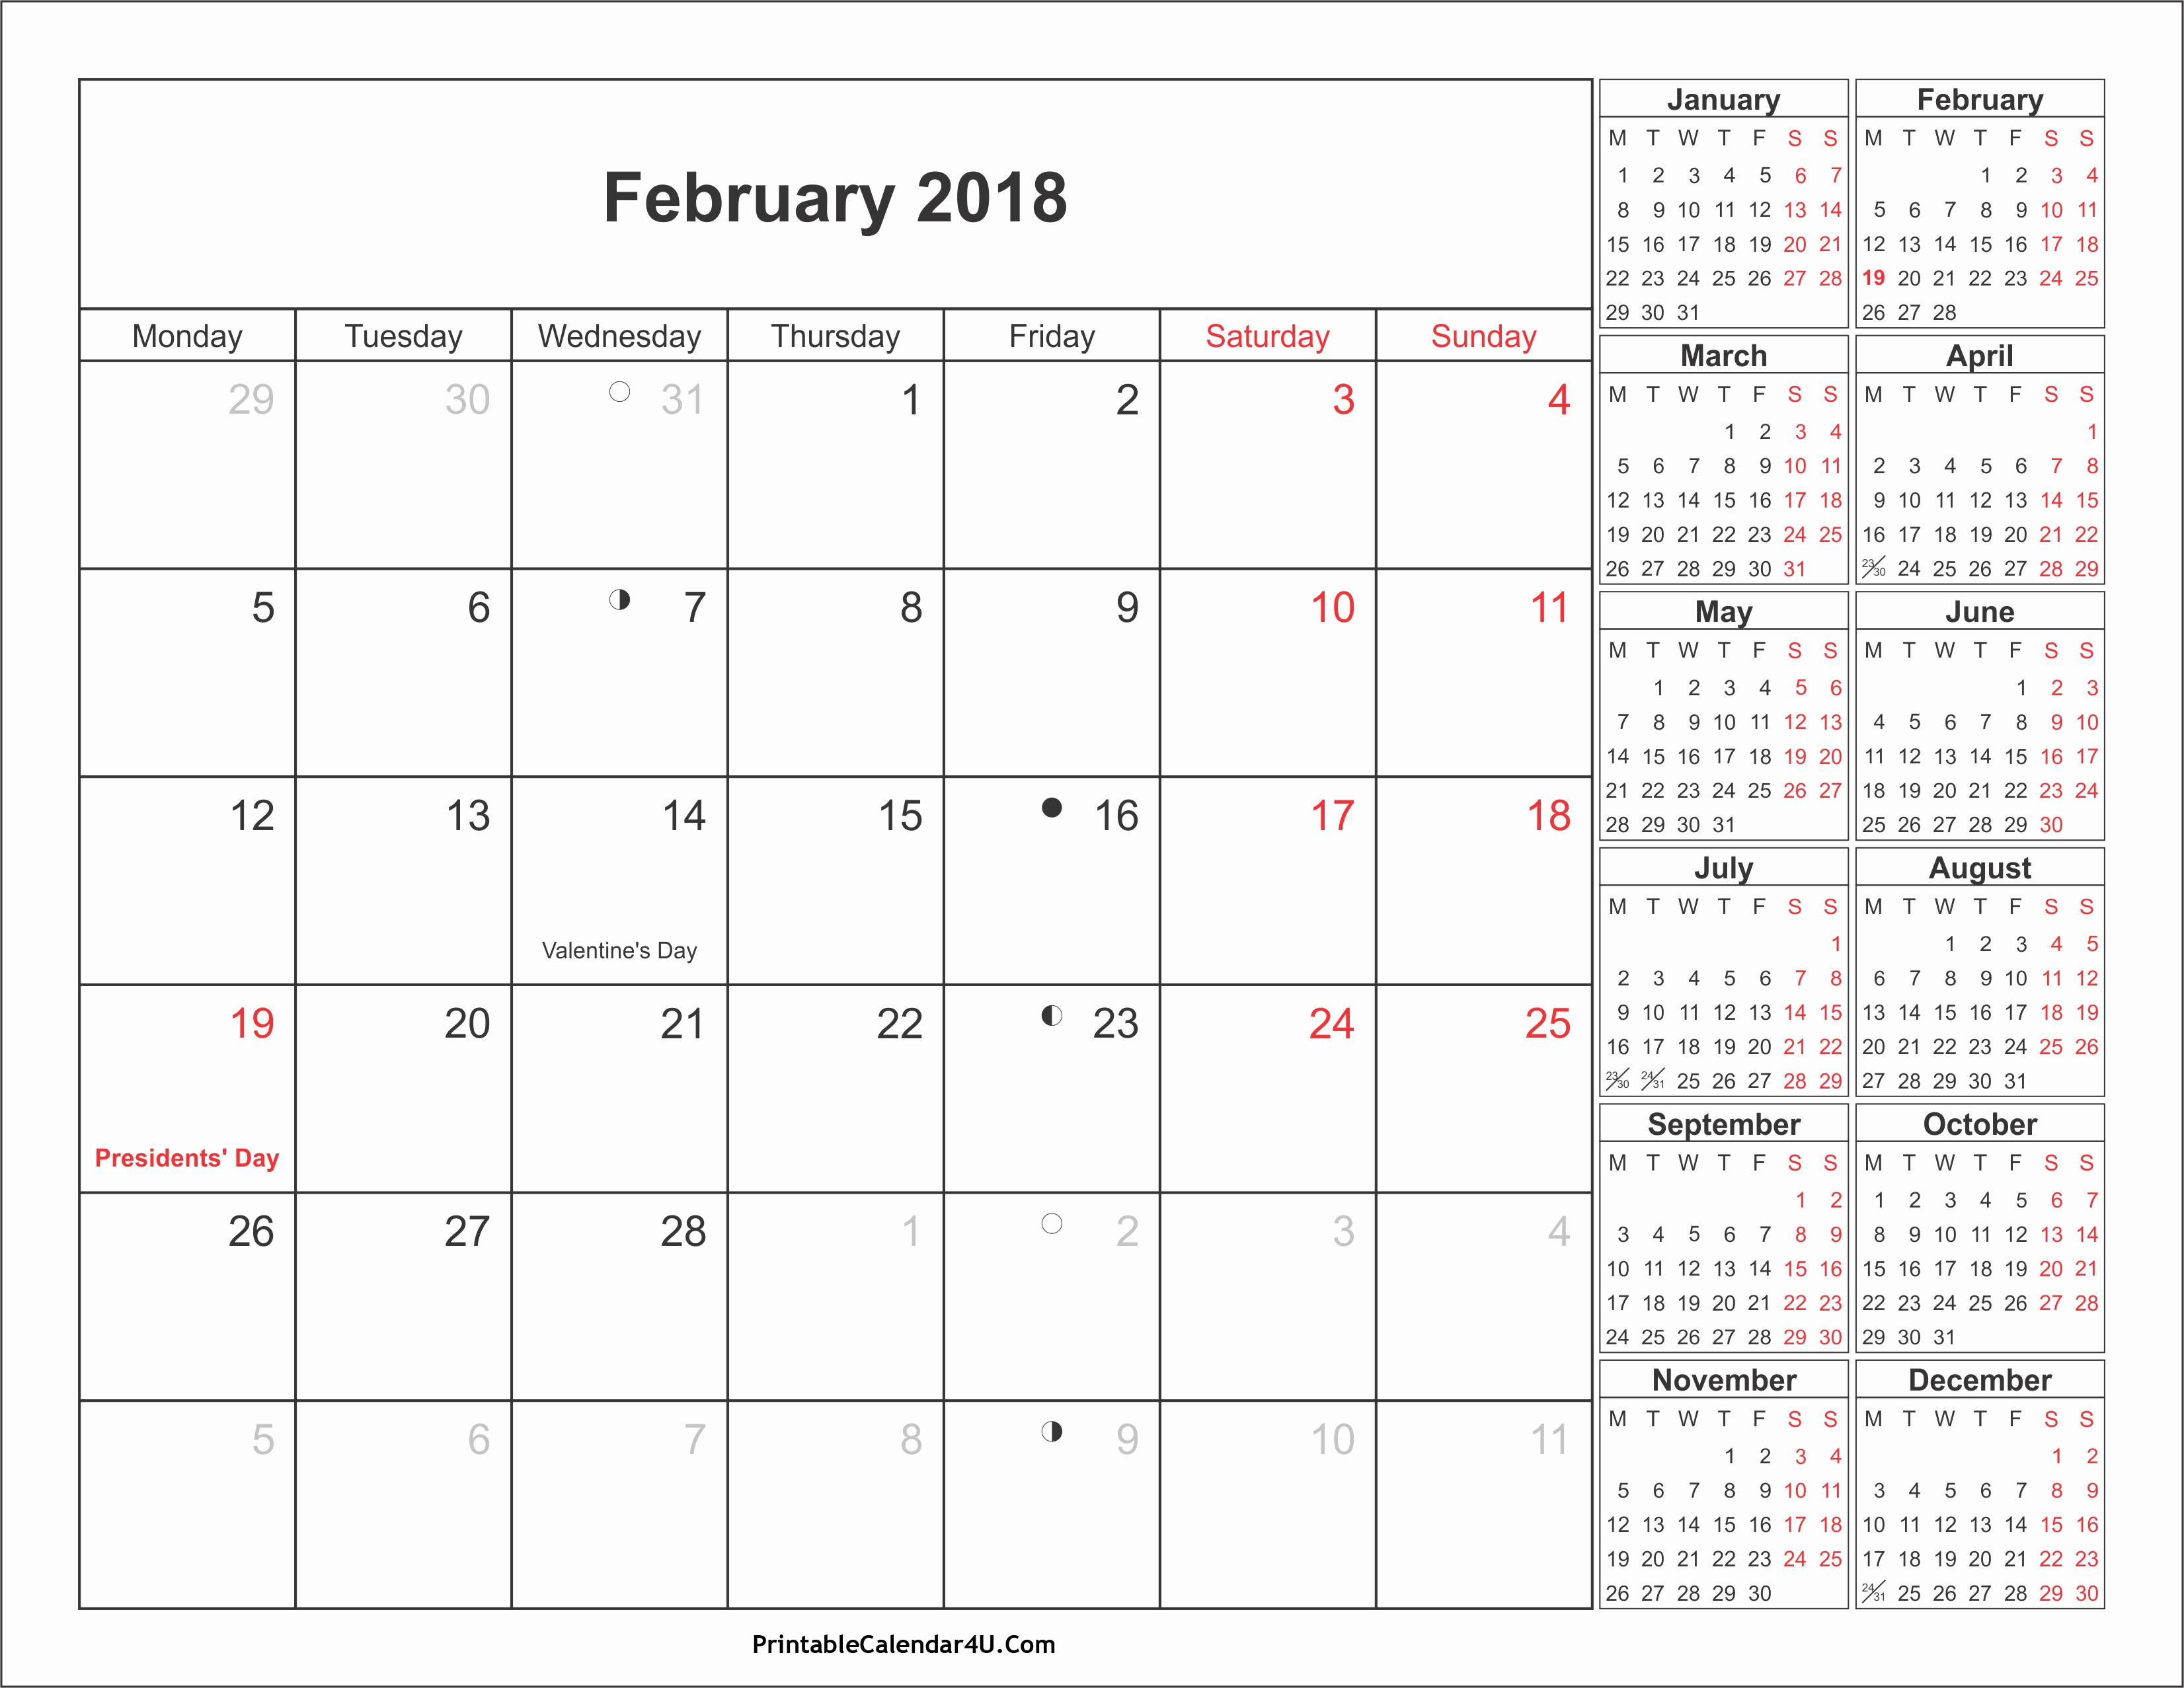 2017-2018 Printable Calendar Awesome February 2018 Calendar with Holidays